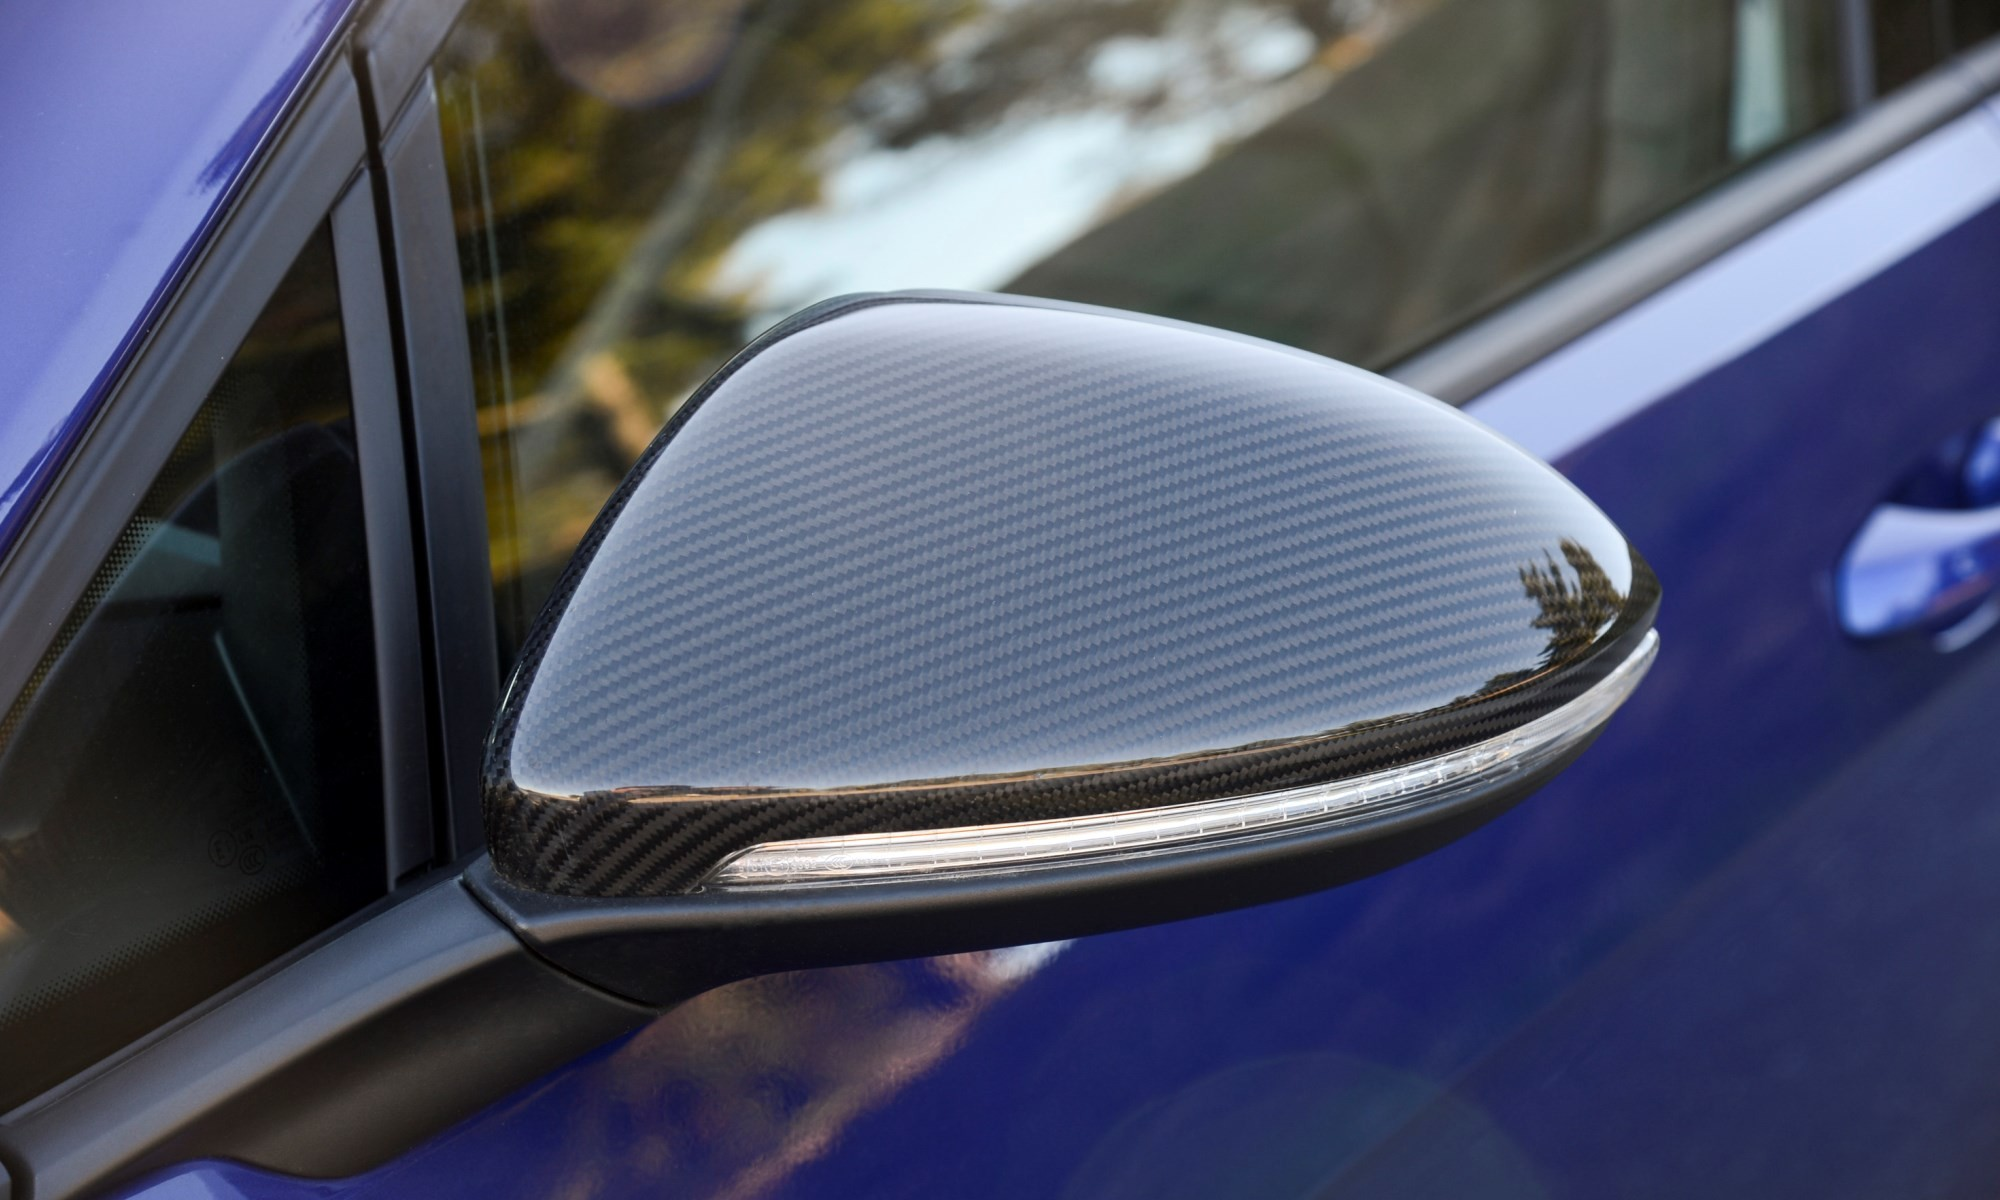 VW Golf R mirror detail